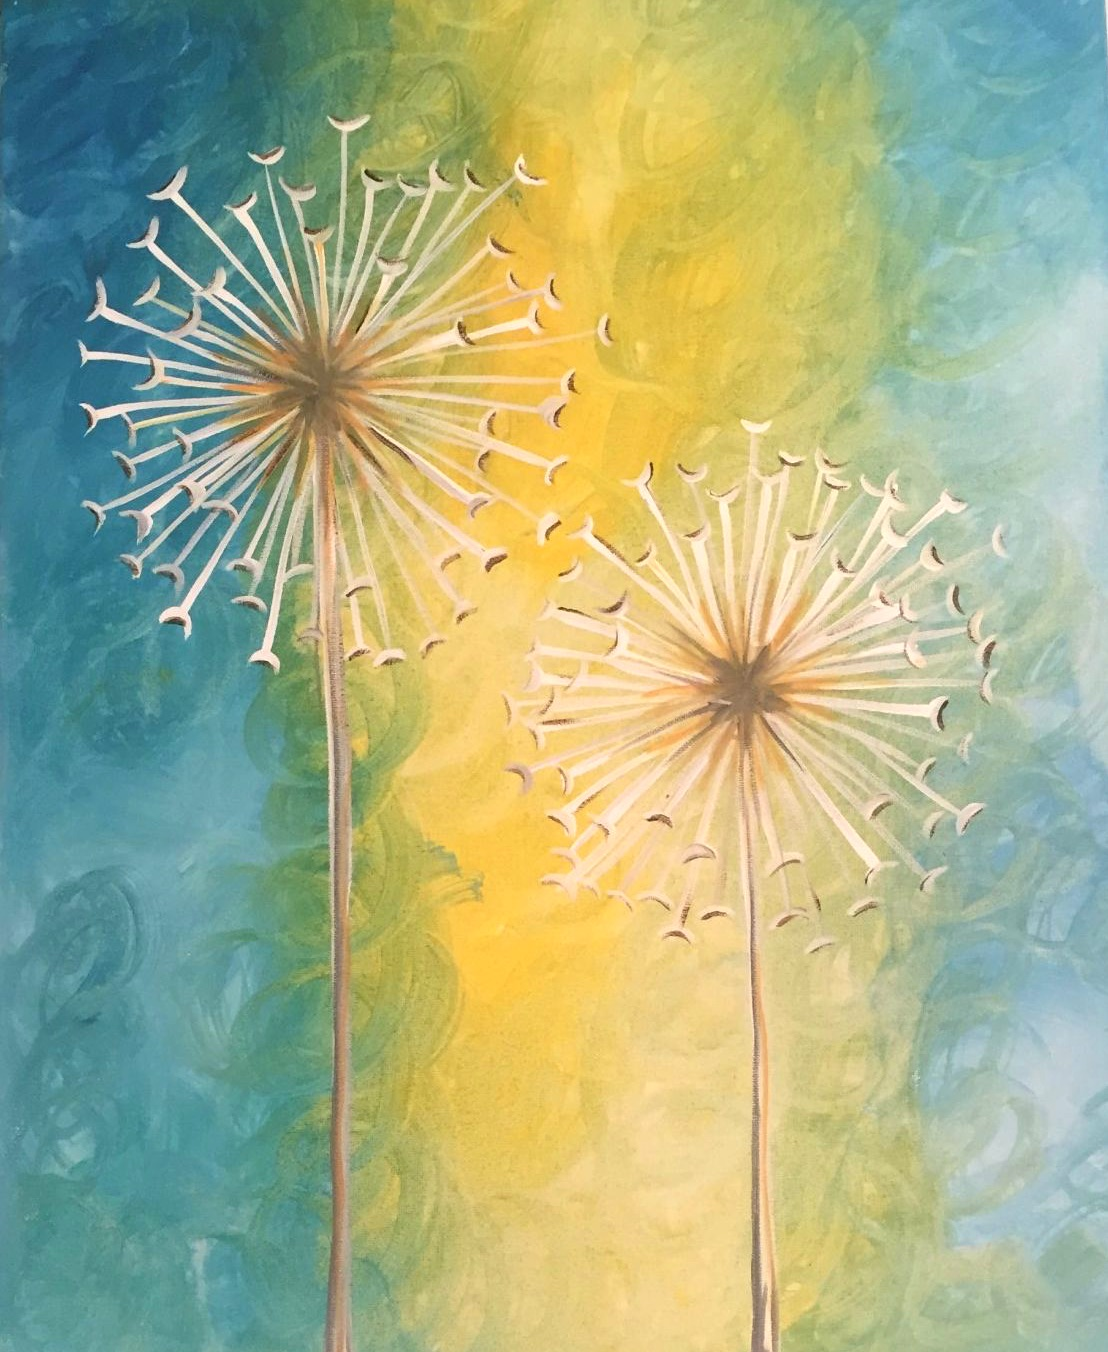 Dandelions - Downtown GR